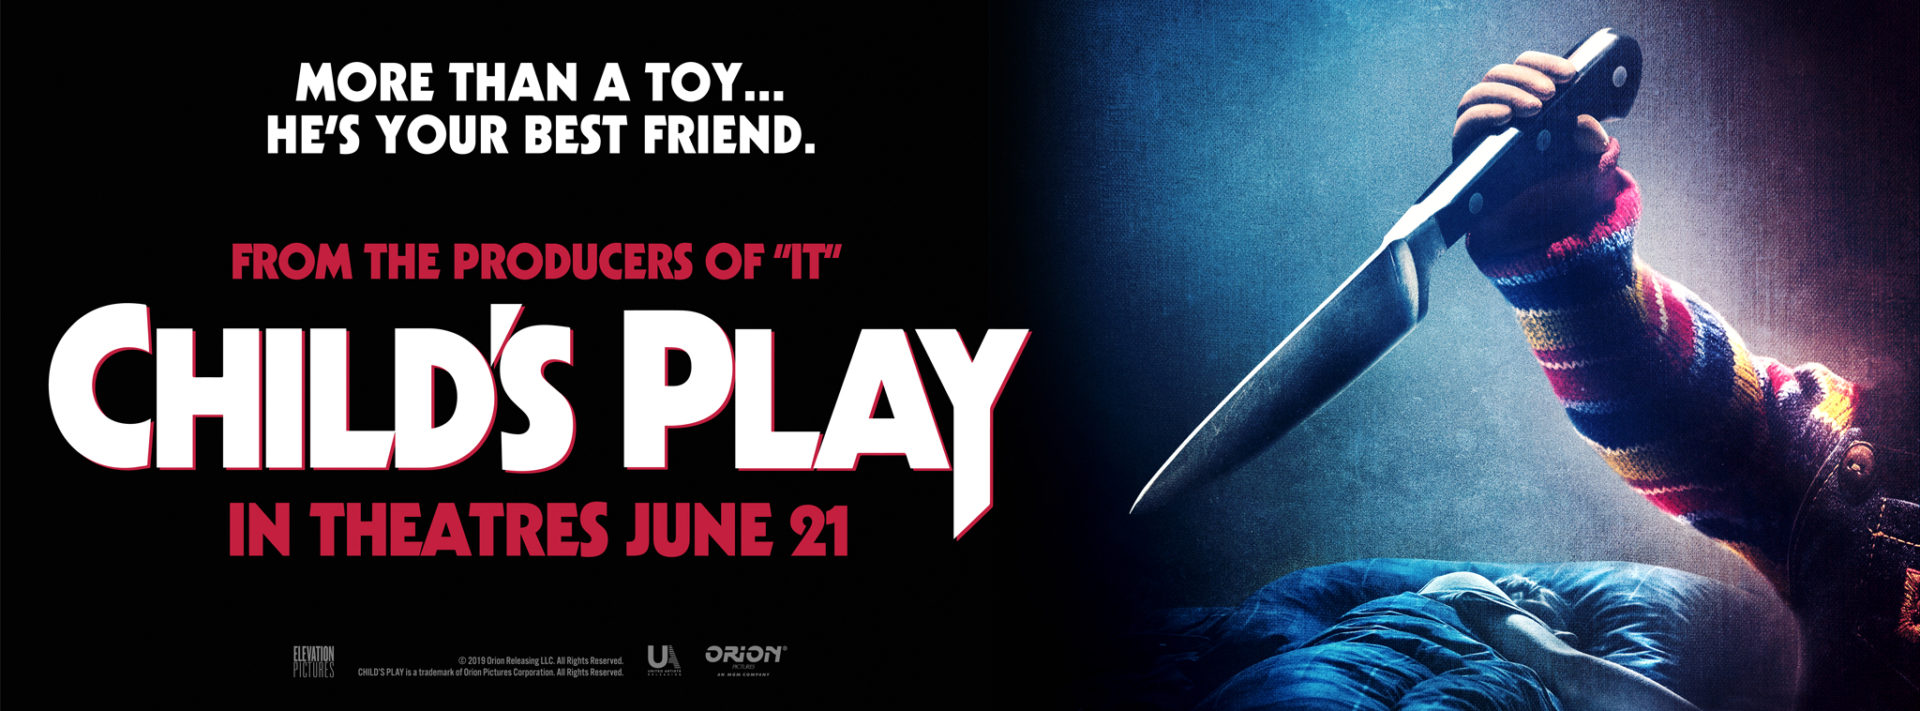 ChildsPlay_Digital_Banner_2048x758_v1